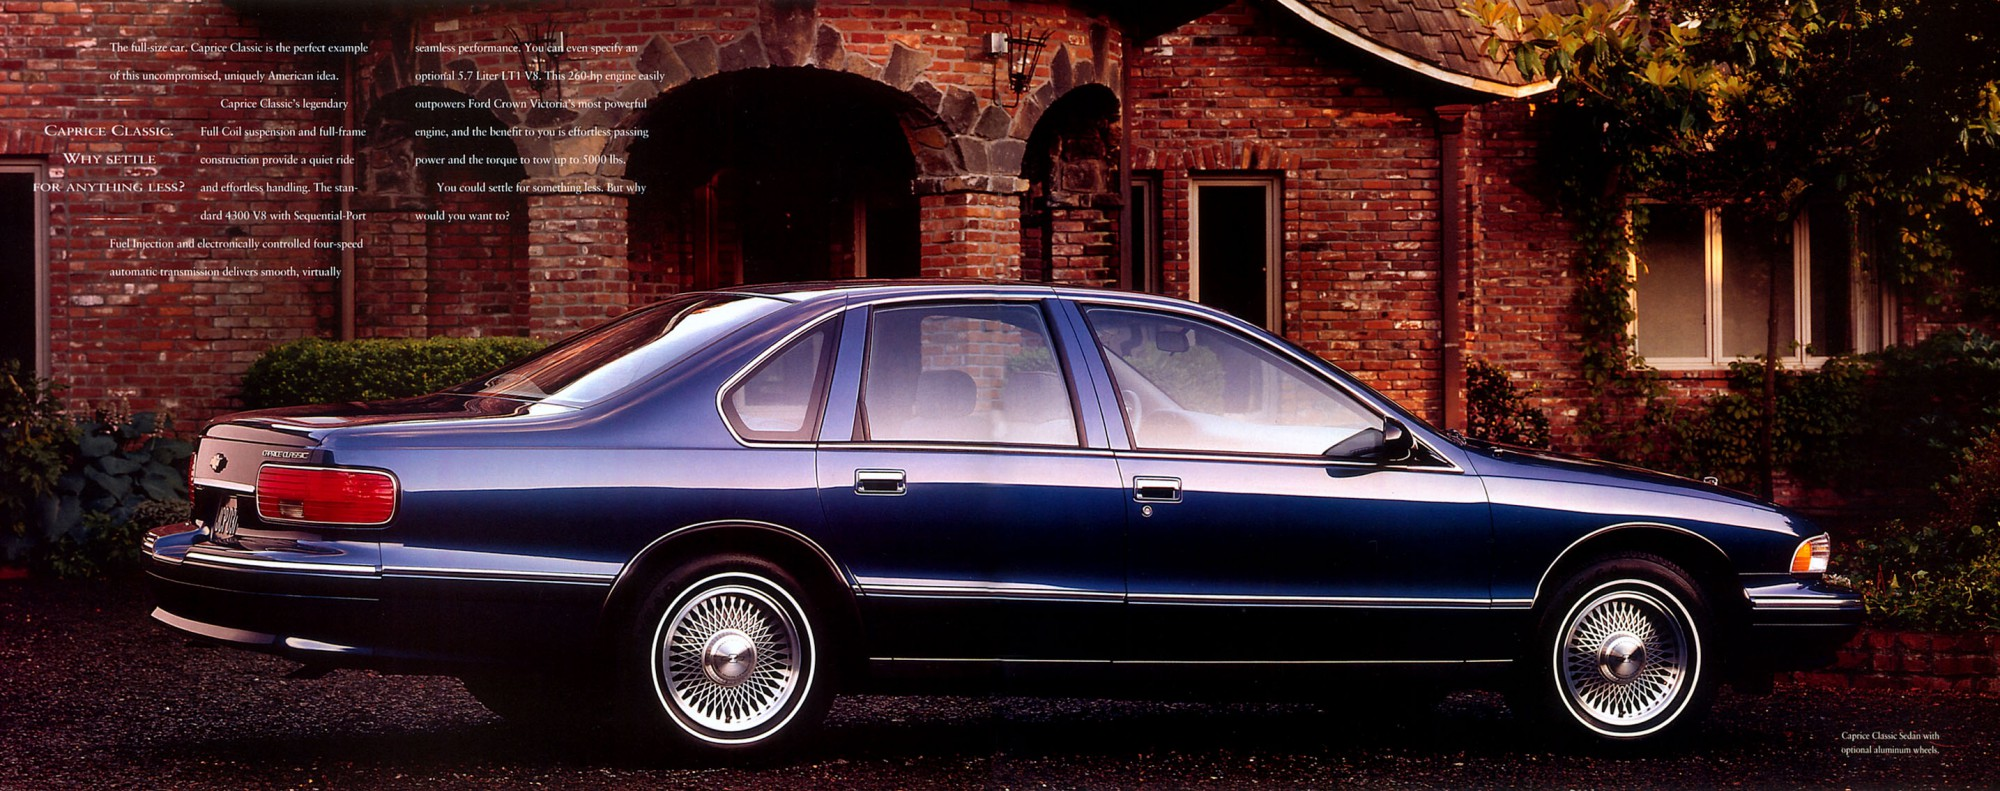 hight resolution of 1995 chevrolet caprice classic 04 05